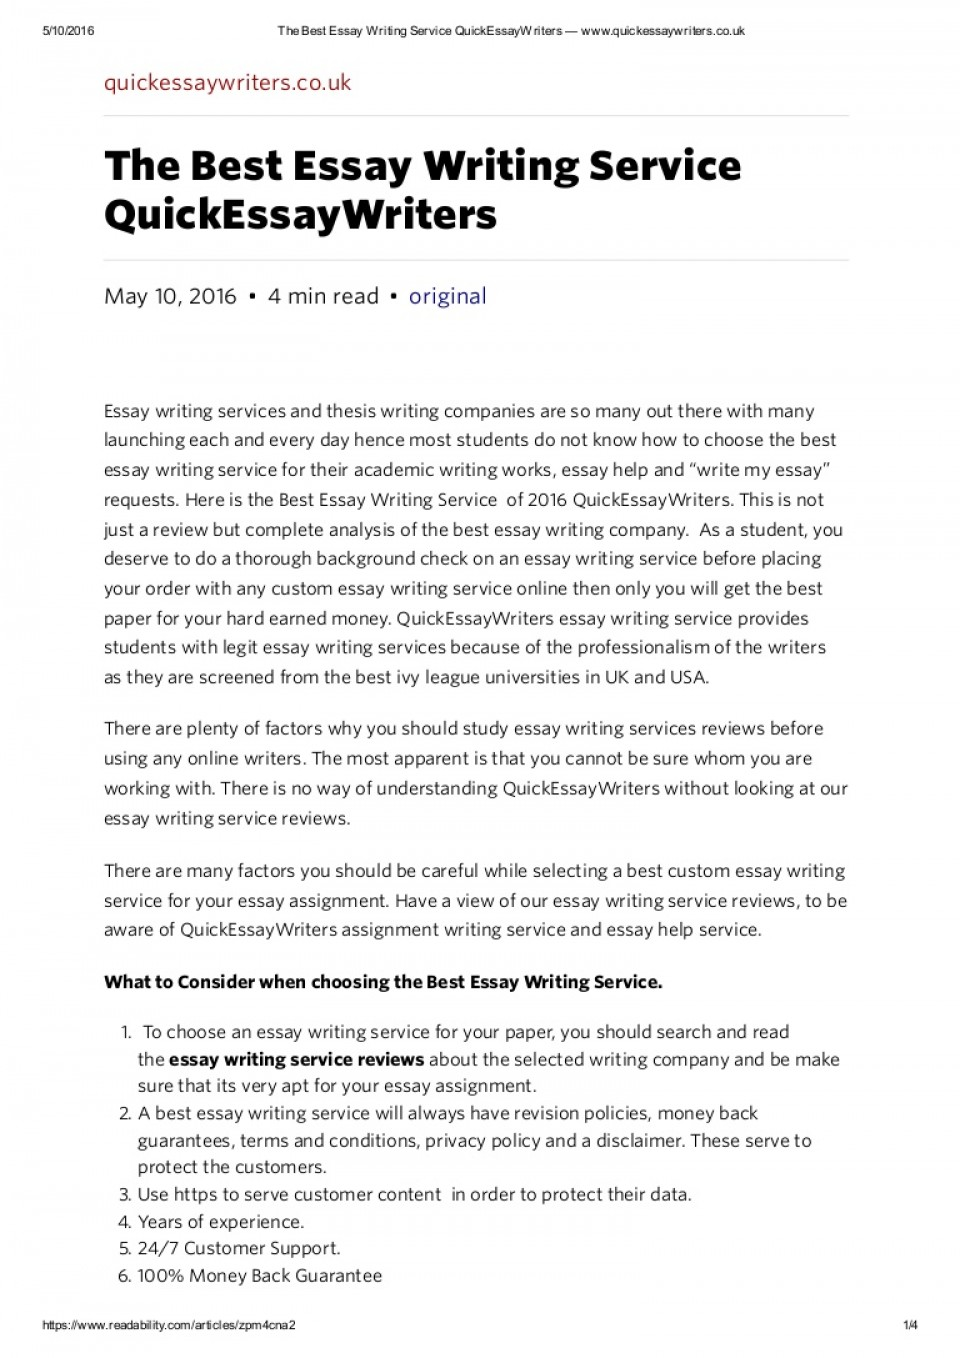 014 Essay Example Thebestessaywritingservicequickessaywriterswww Thumbnail Best Awful Writing Apps For Ipad Service 2018 Books Our Friend 960